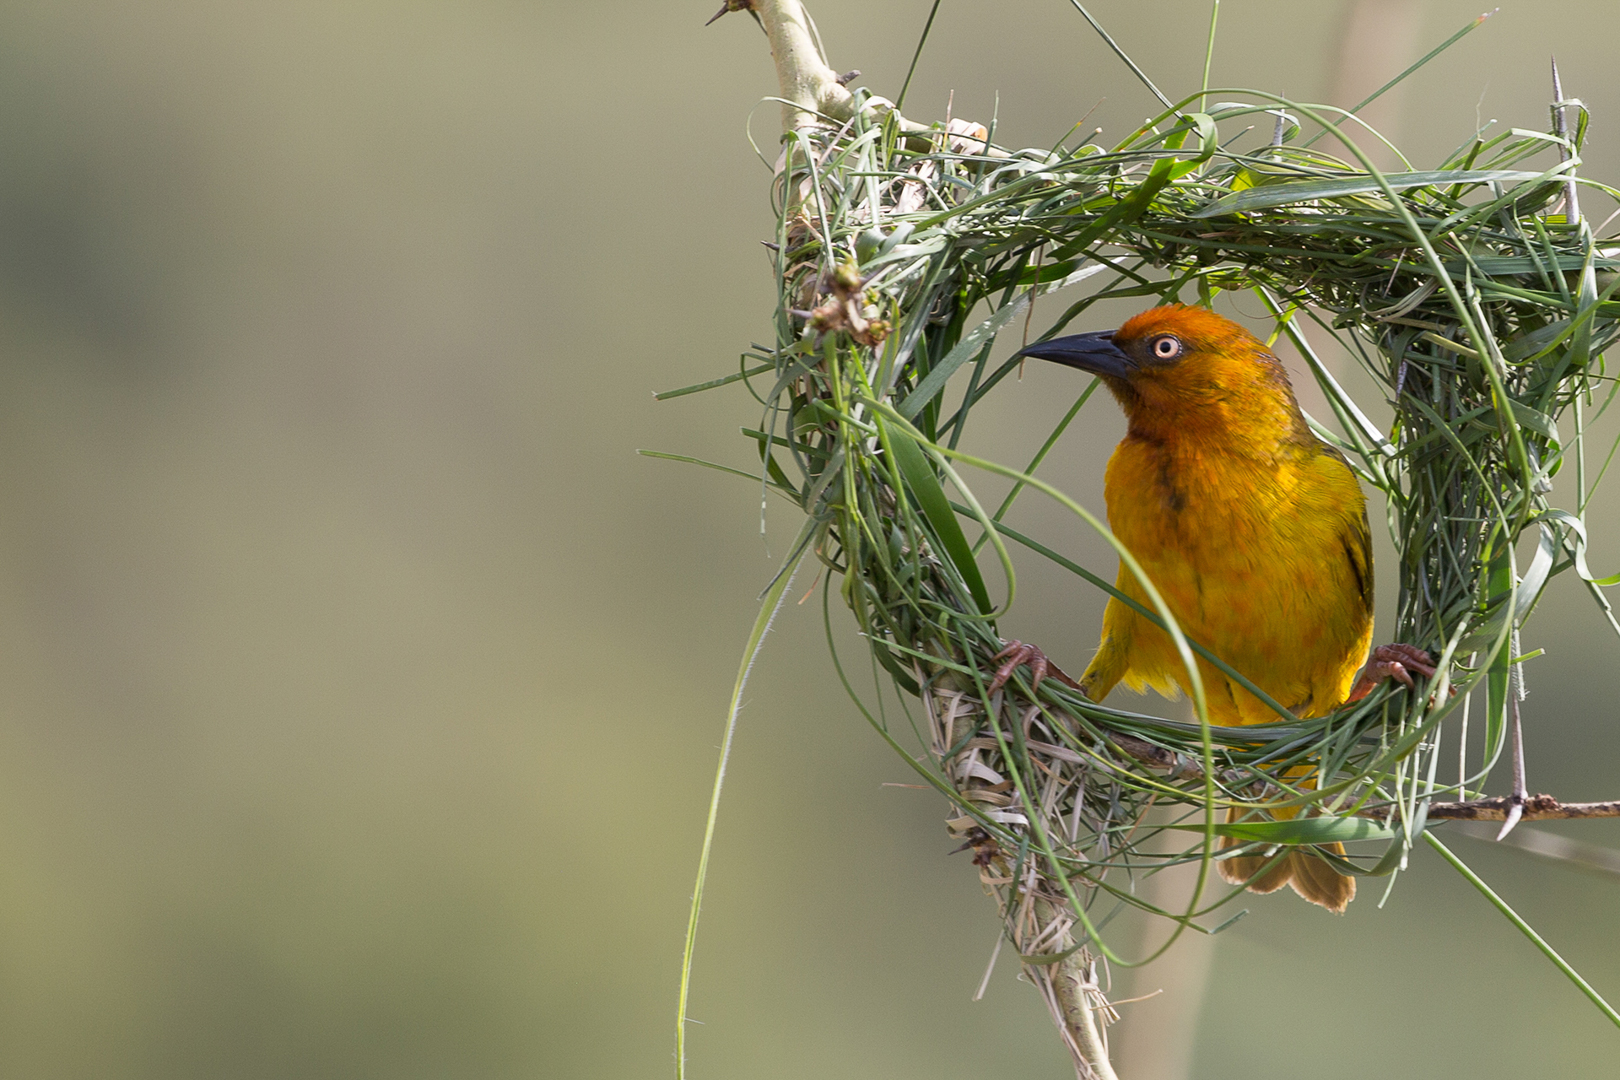 """2019 Open Colour Section """"Skilled Nest Builder"""" by Neville Ritchie: Awarded SSNEP Gold Medal"""